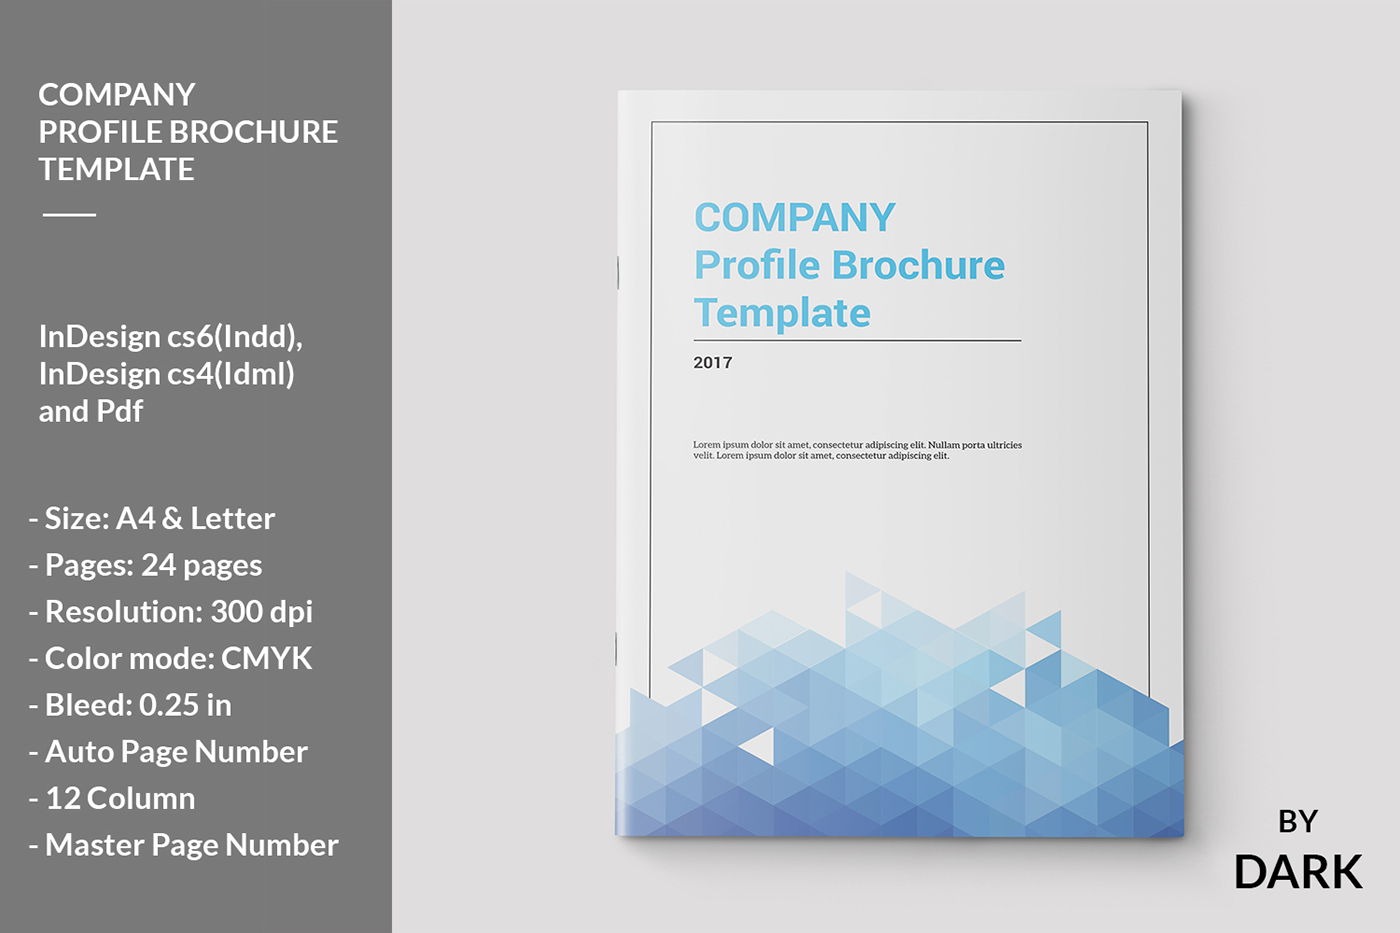 Company Profile Brochure Template On Behance